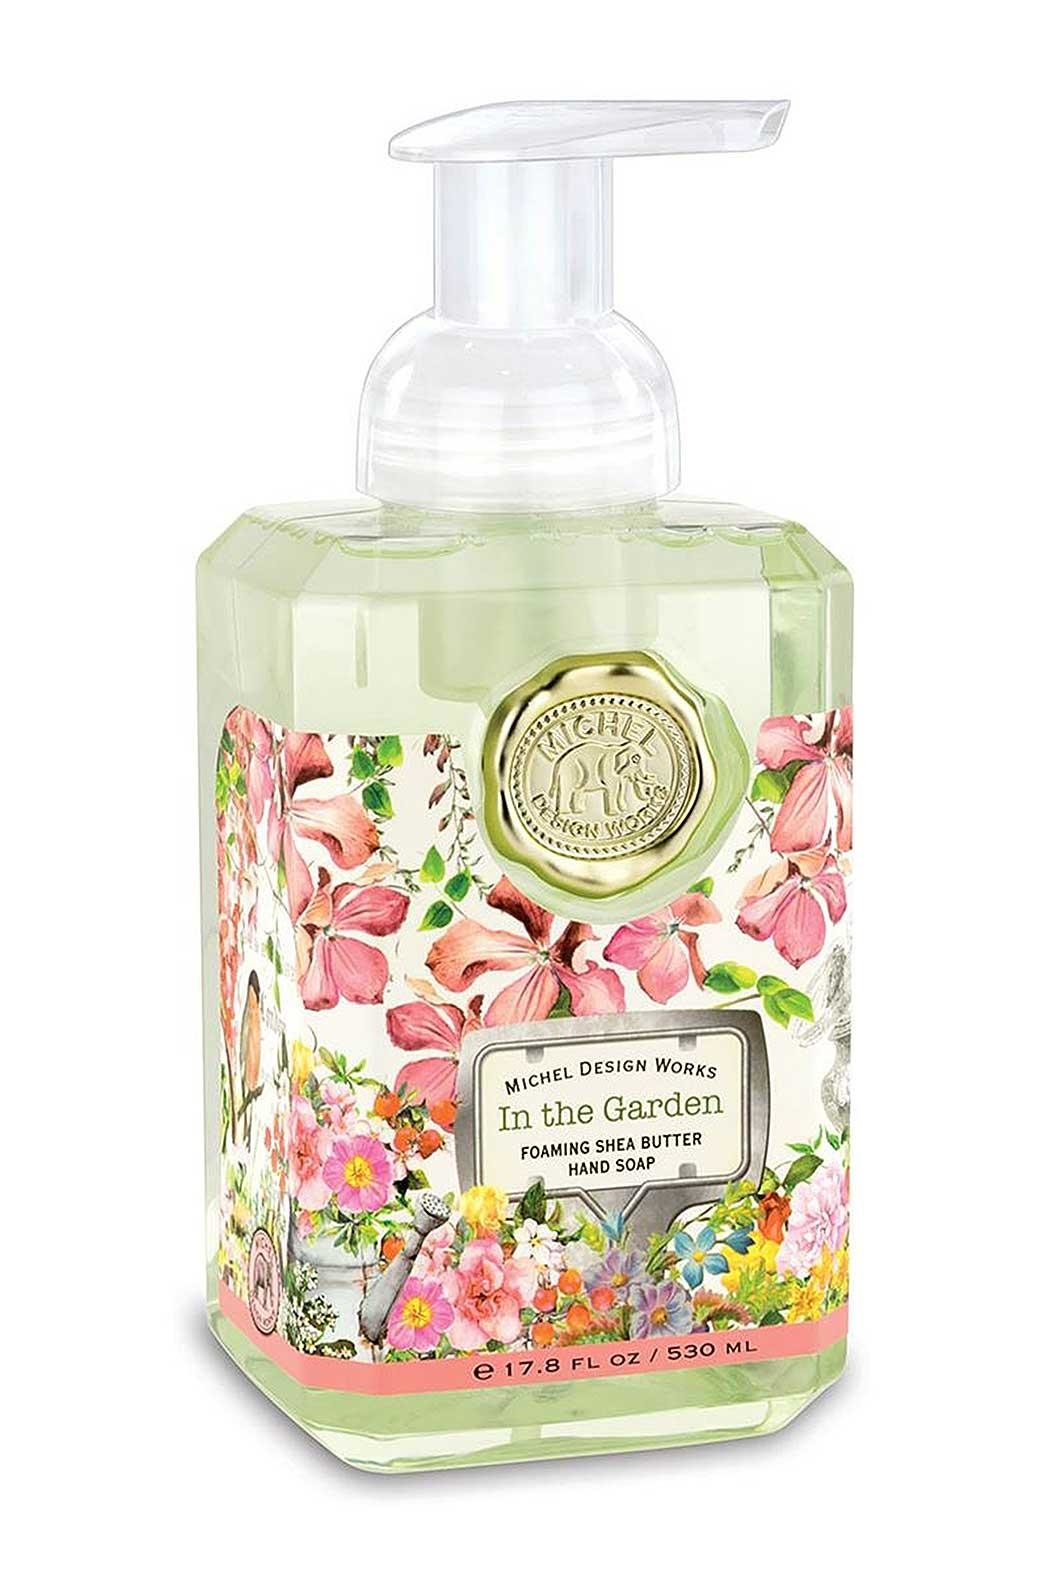 Michel Design Works Garden Foaming Handsoap - Main Image